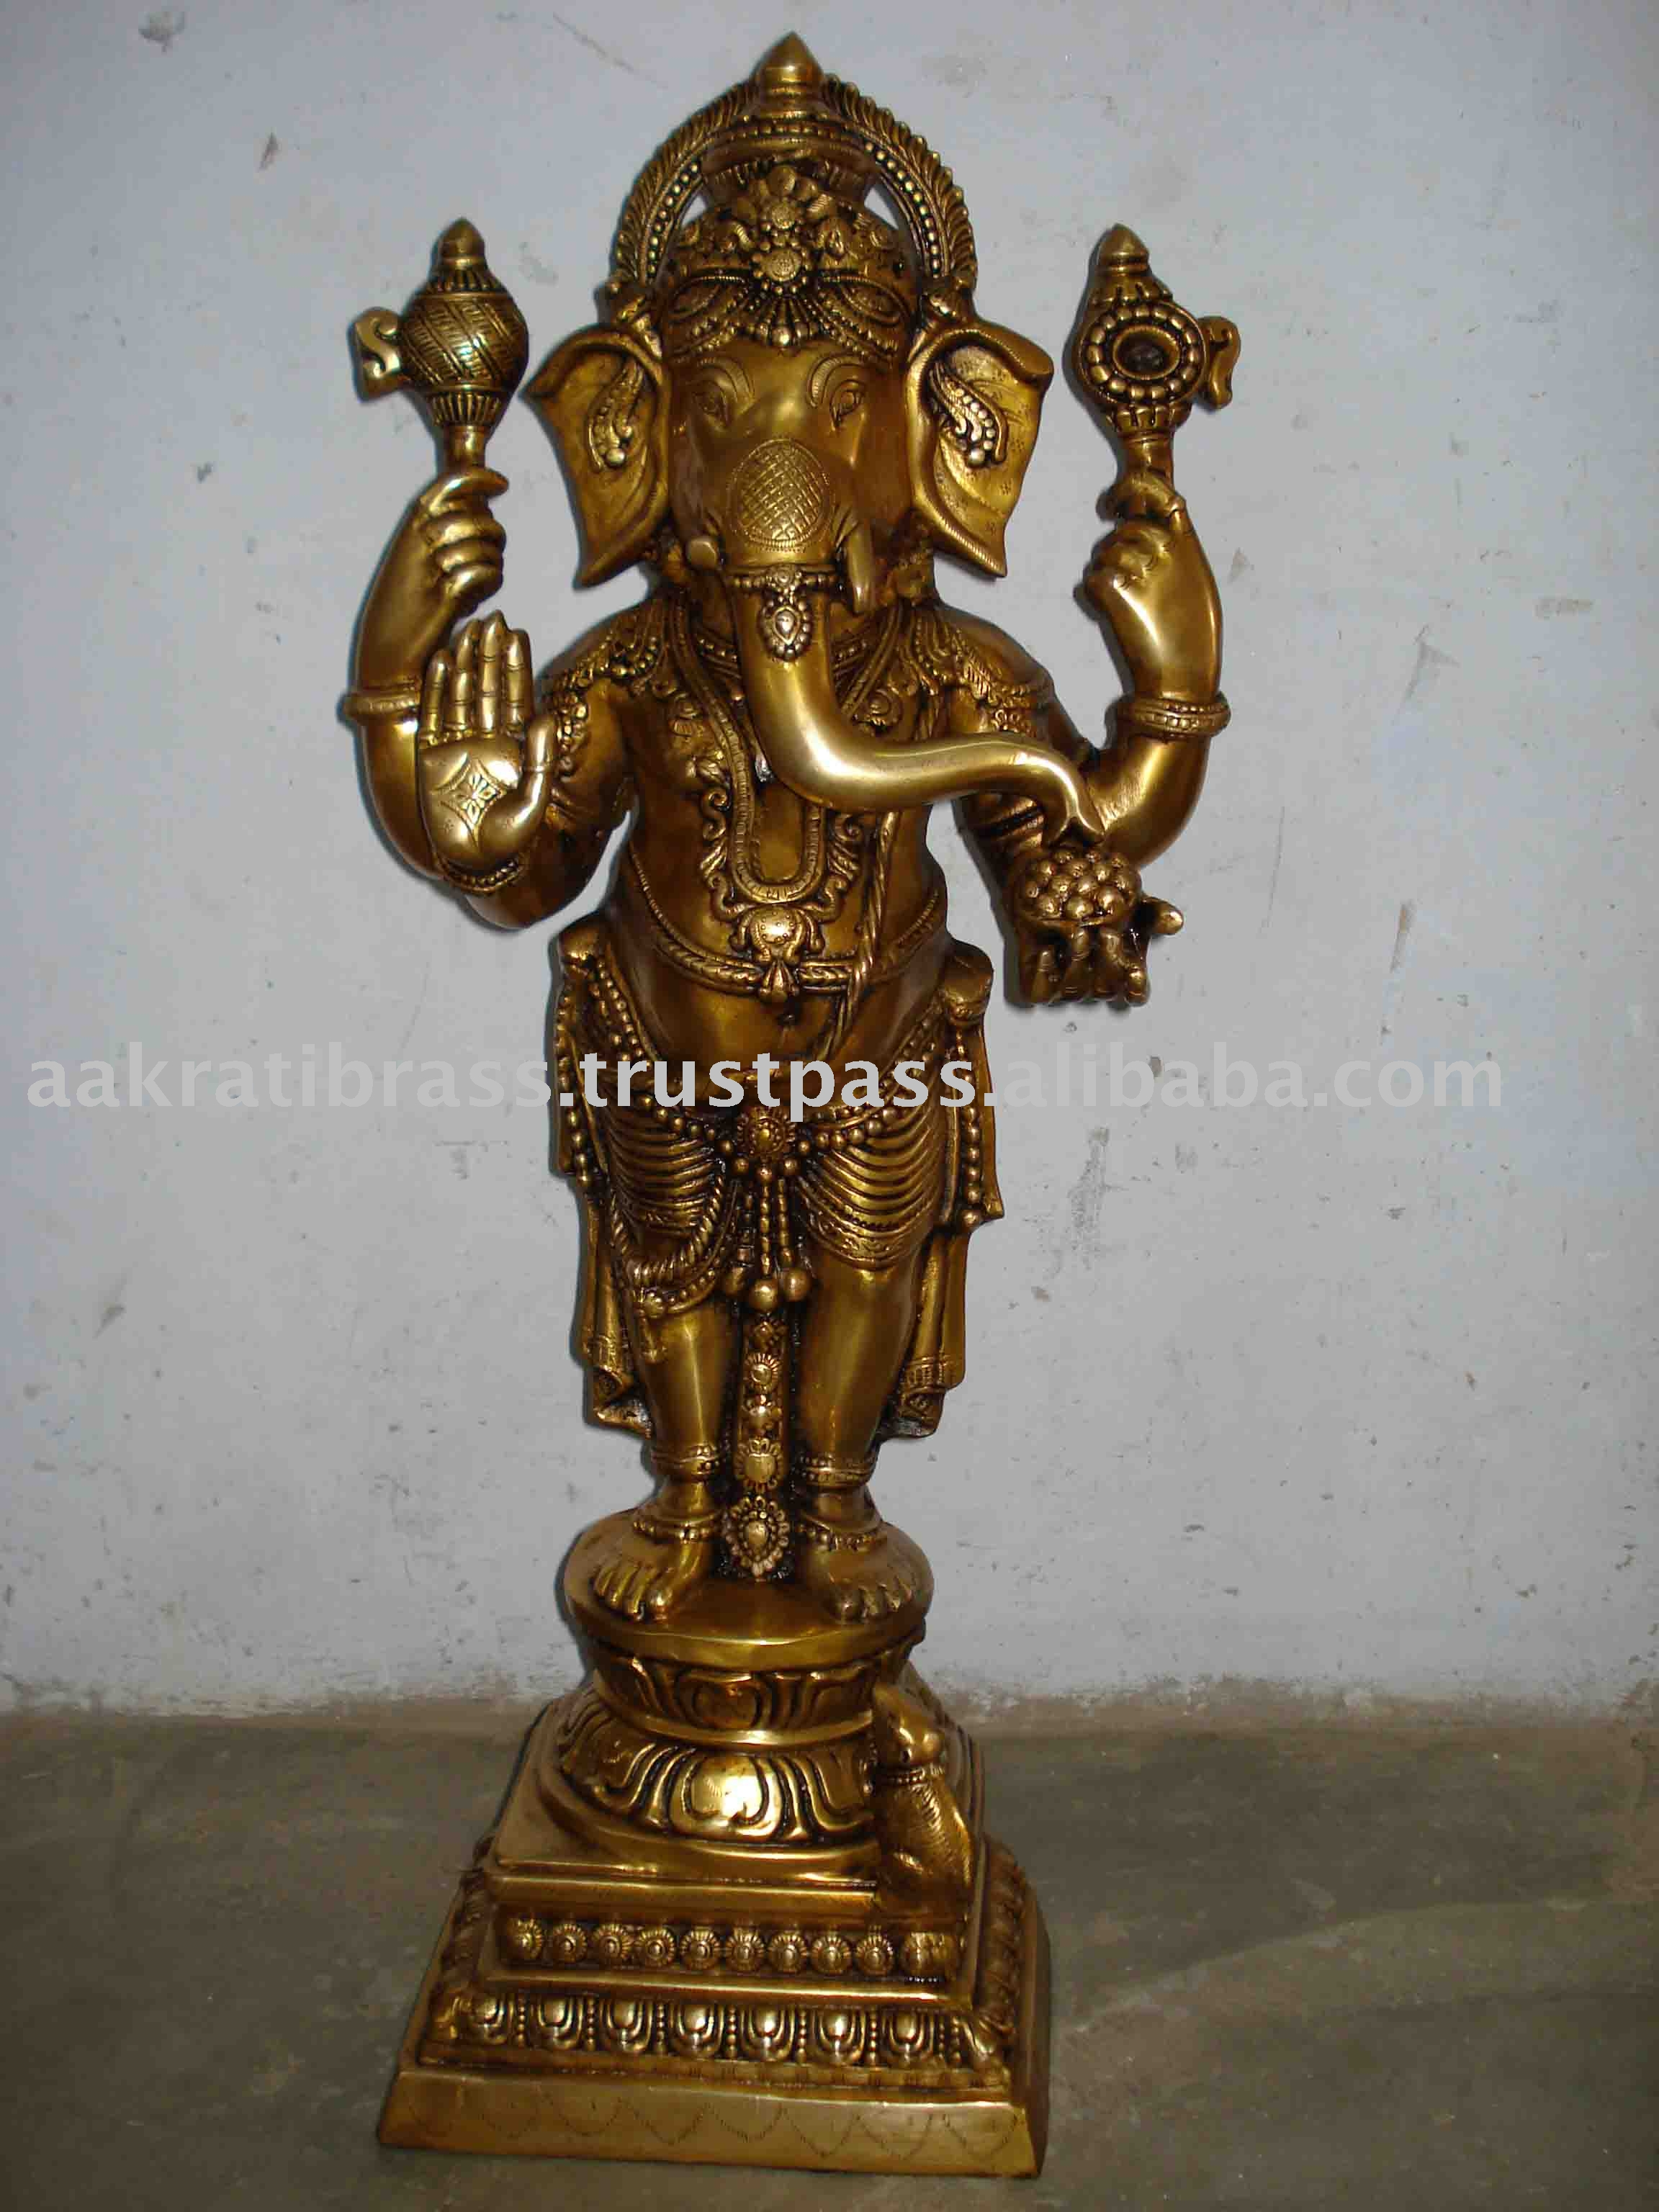 Brassware - Standing Statue of Lord Ganesh made in Brass Metal